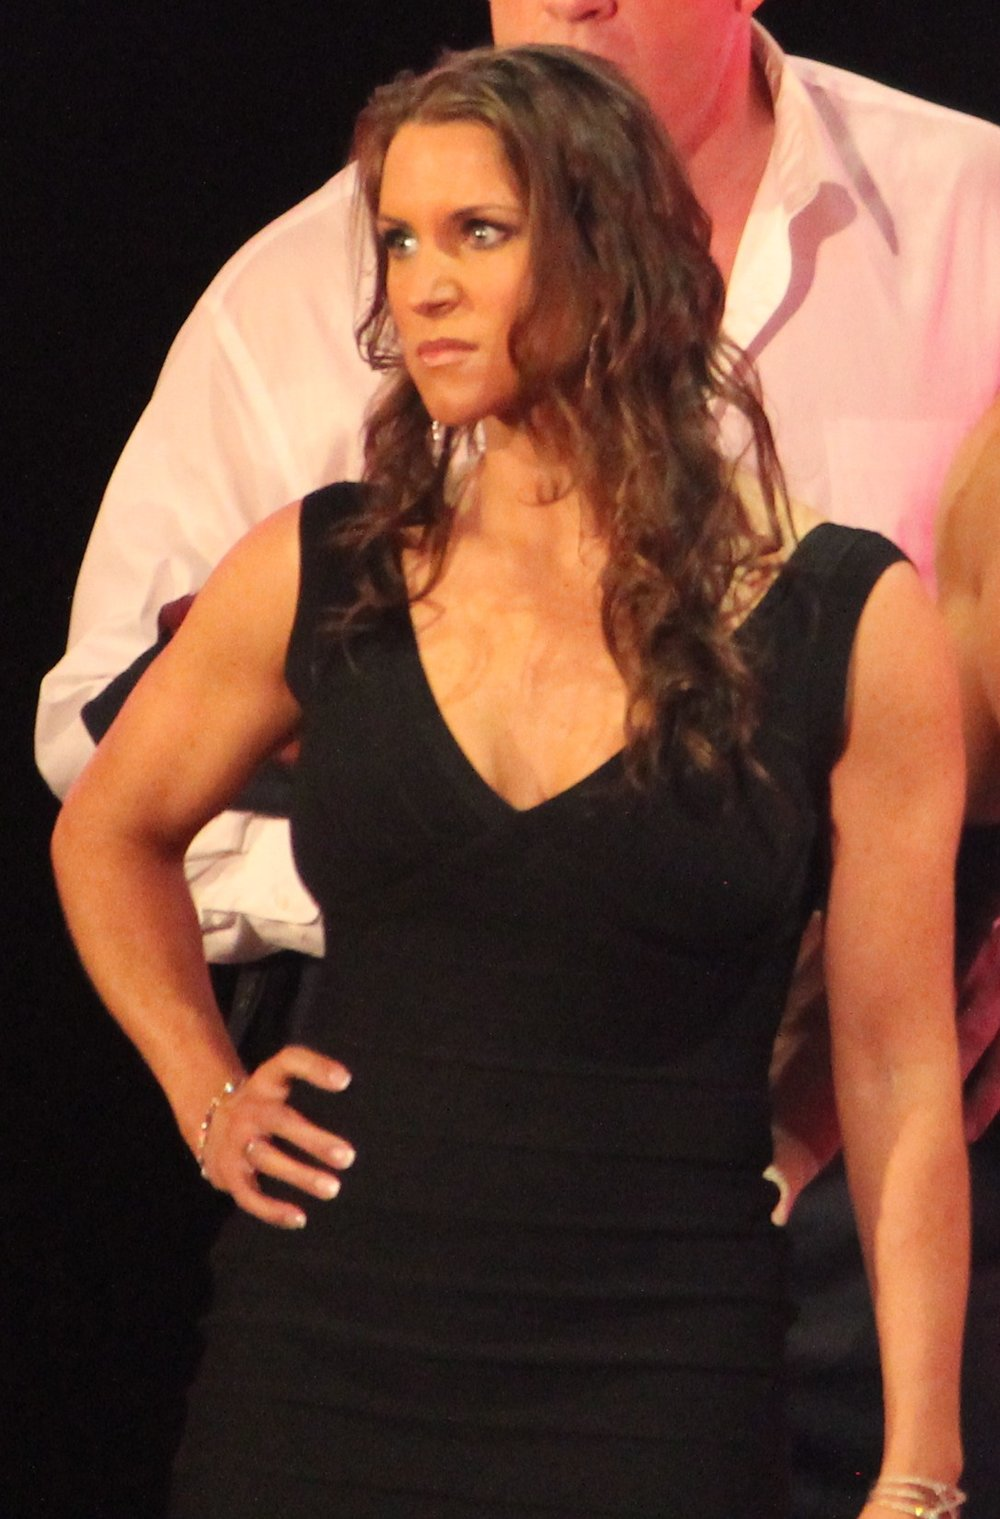 Stephanie McMahon. Original image by Megan Elice Meadows via Flickr